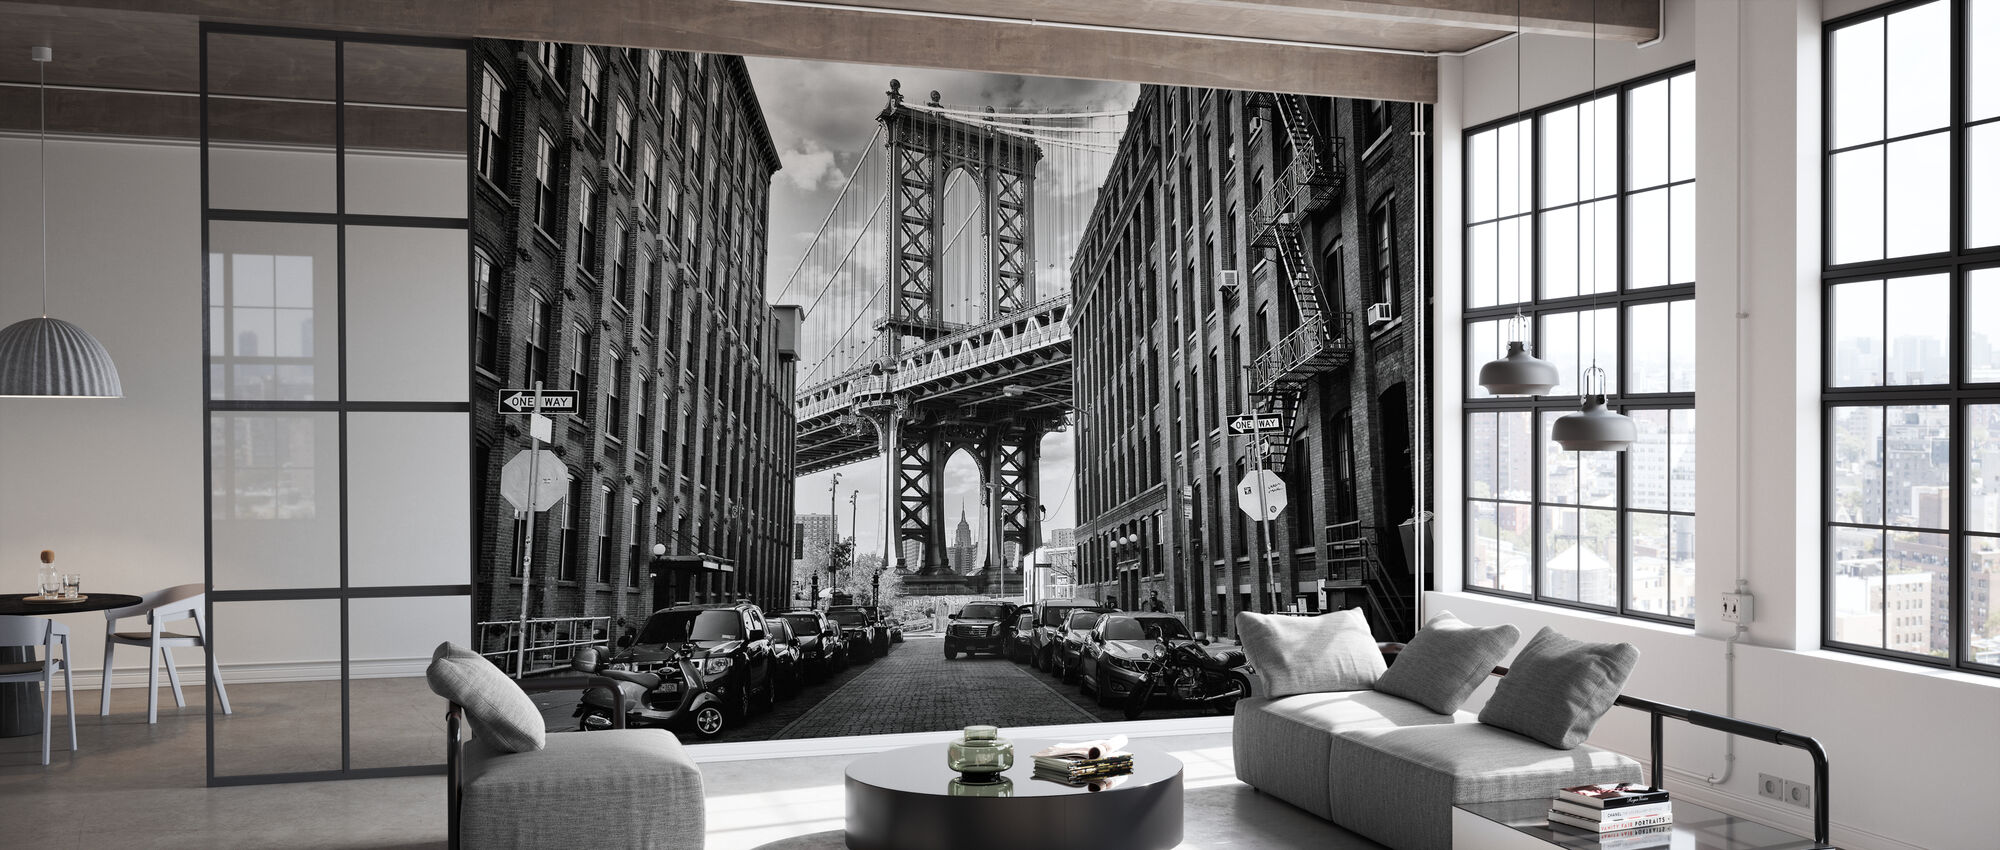 In America, black and white - Wallpaper - Office